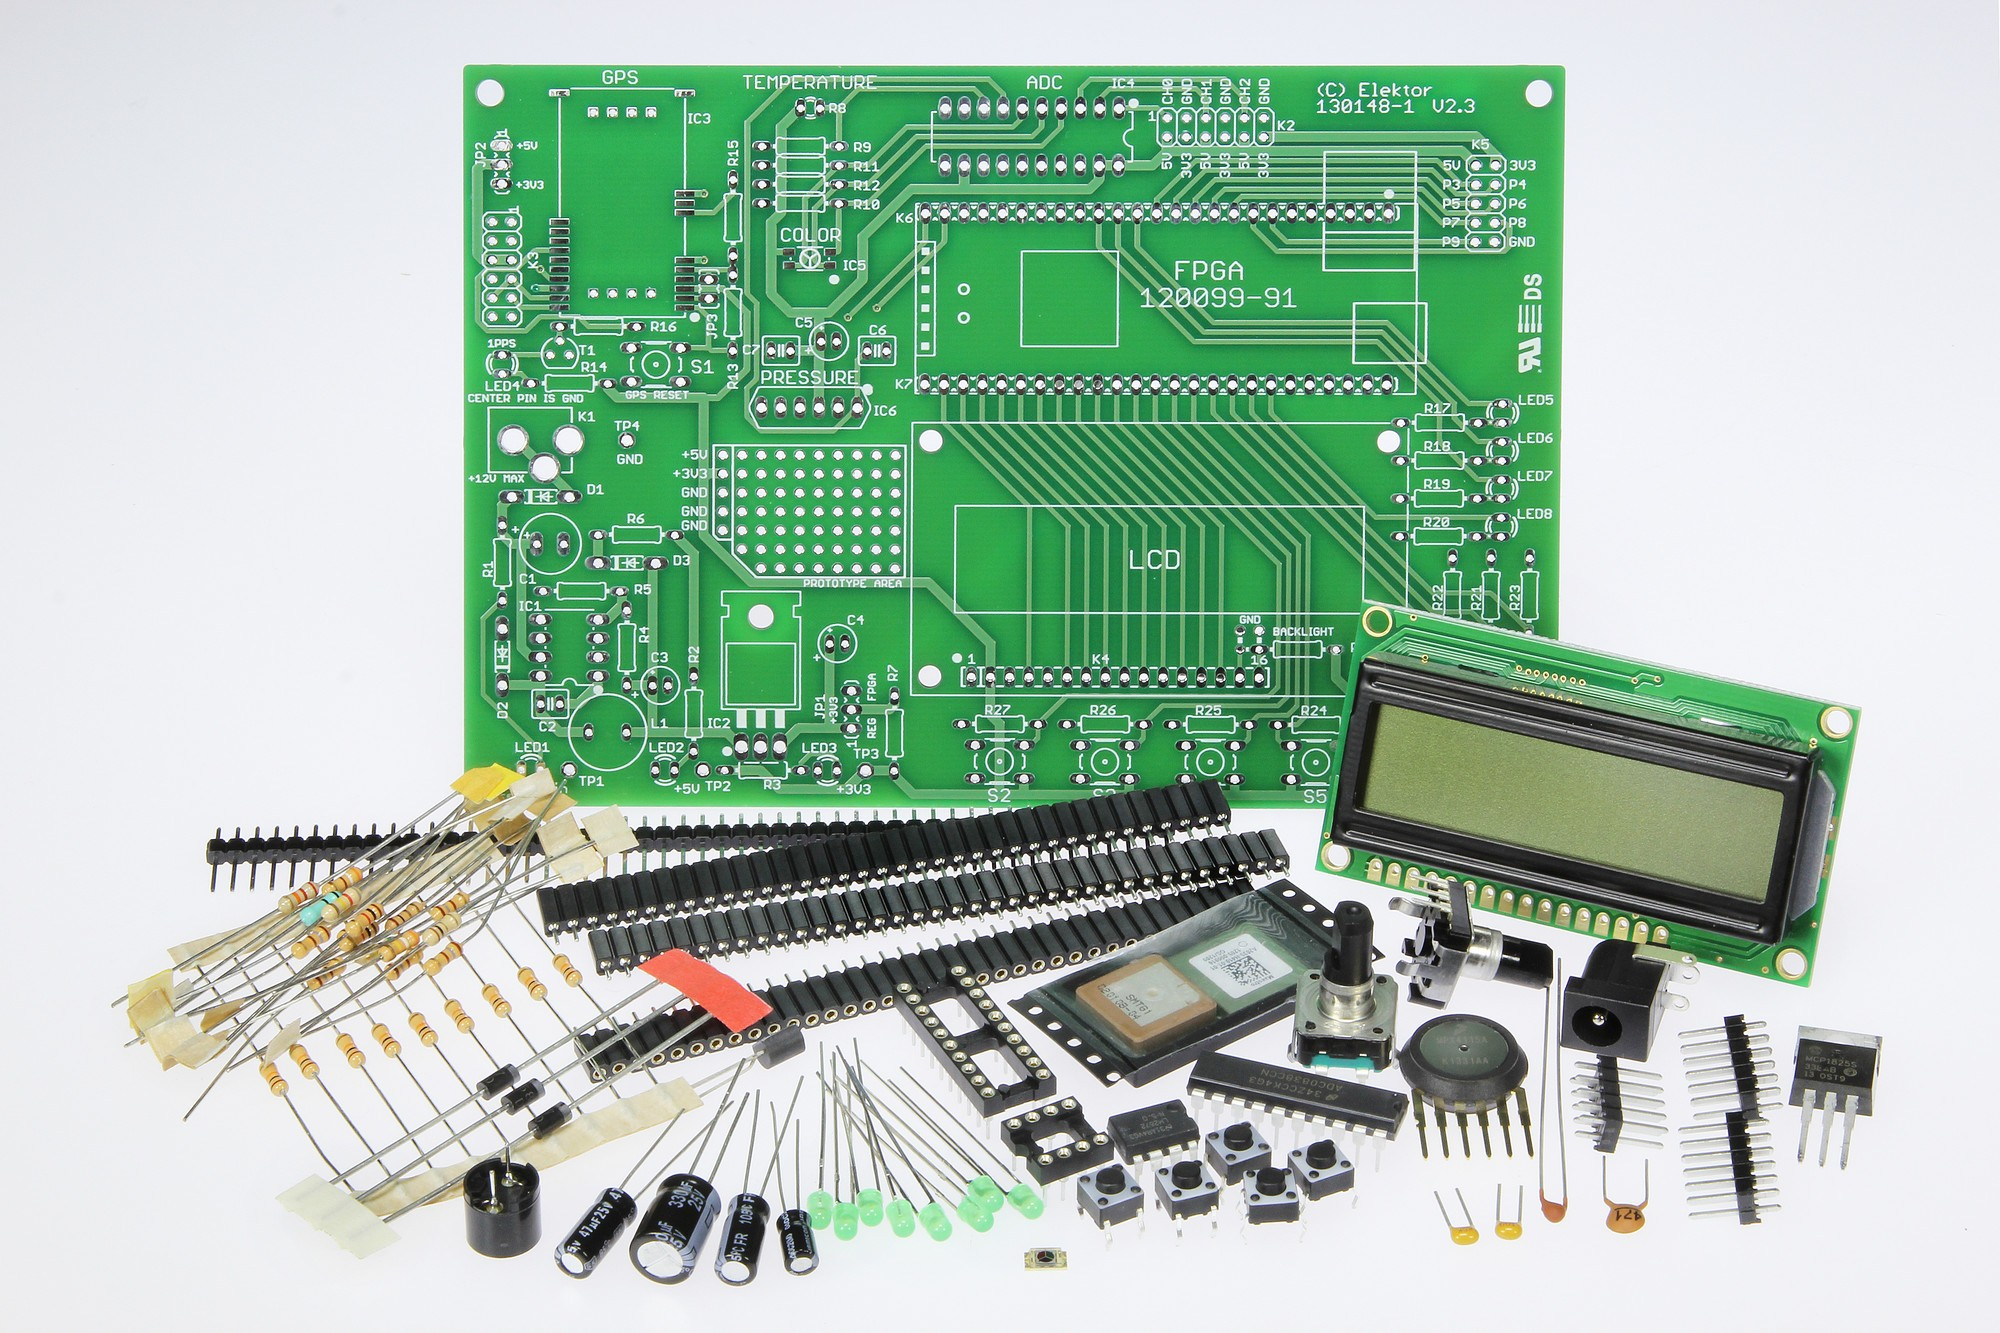 Multi I/O for FPGA Development Board (130148-71)